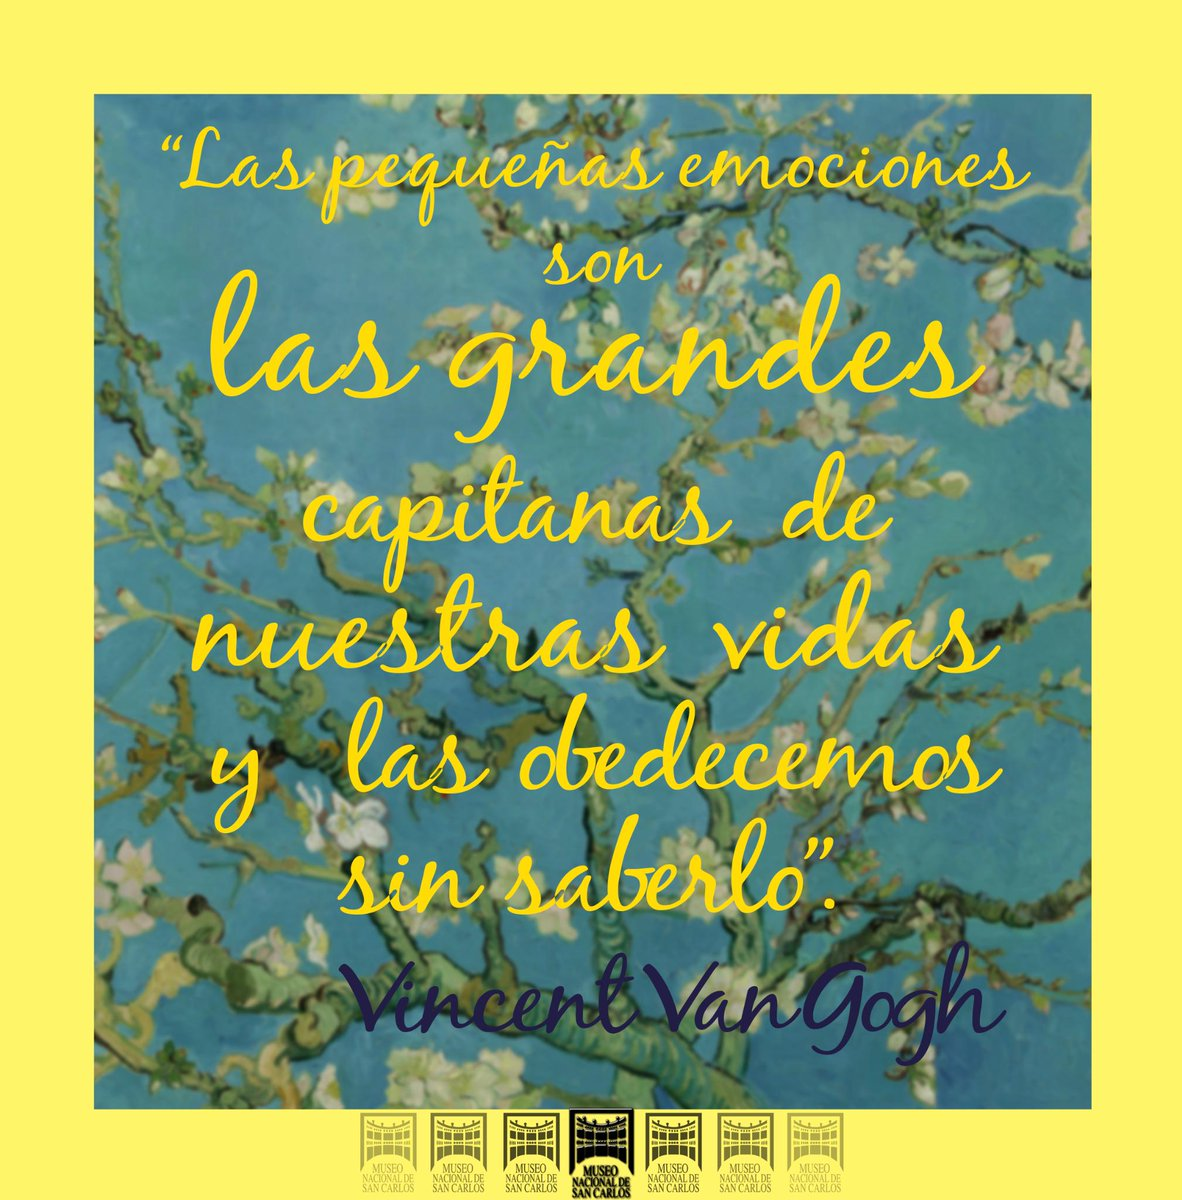 Quote Me On Twitter Rt Museosancarlos Una Frase Del